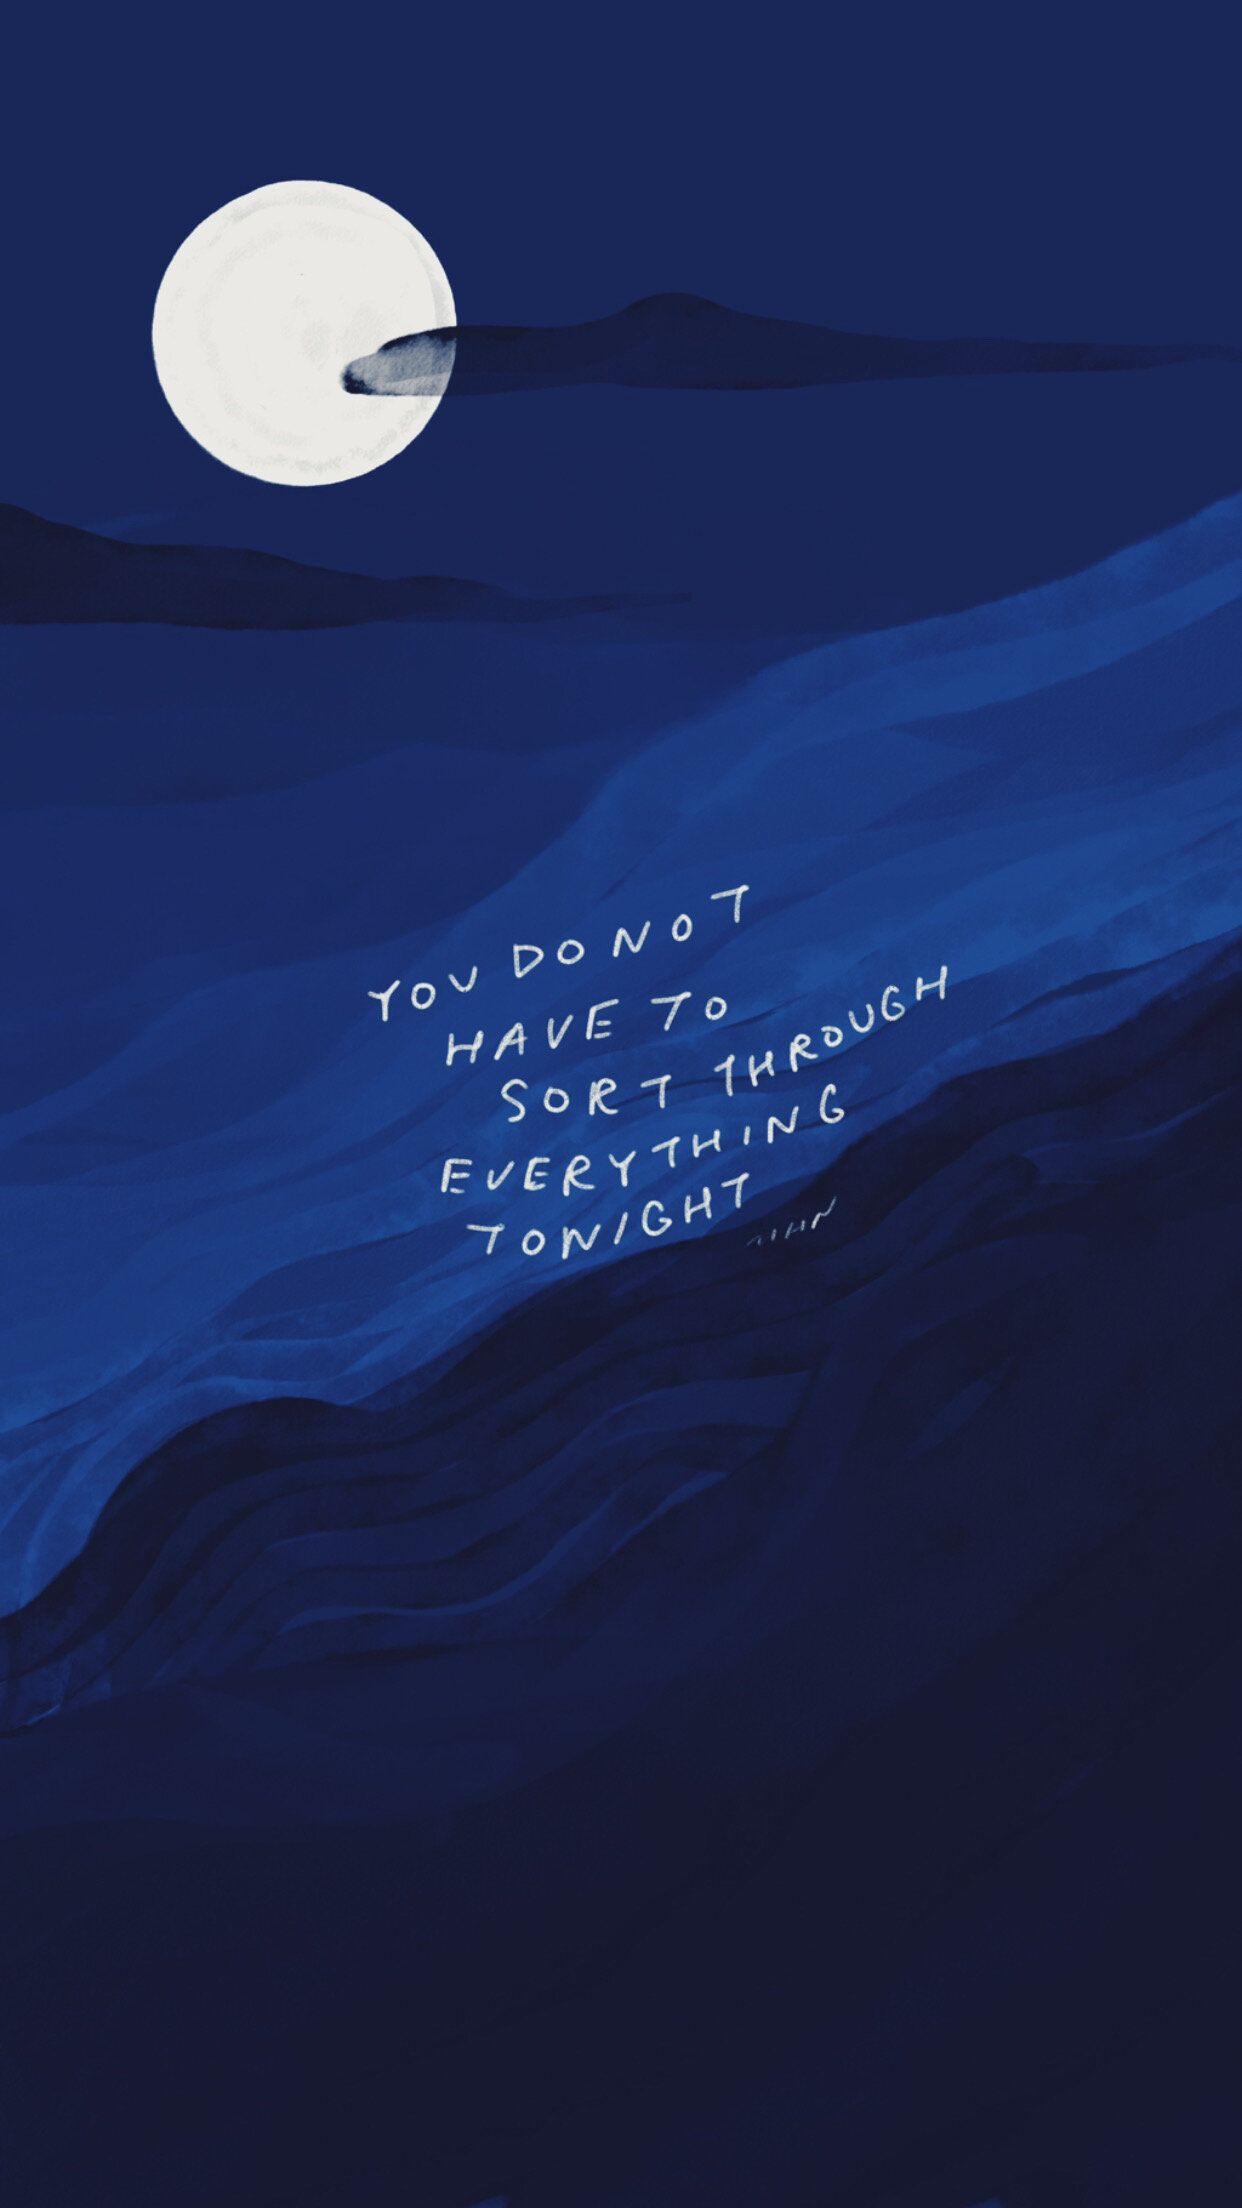 You do not have to sort through everything tonight — Morgan Harper Nichols